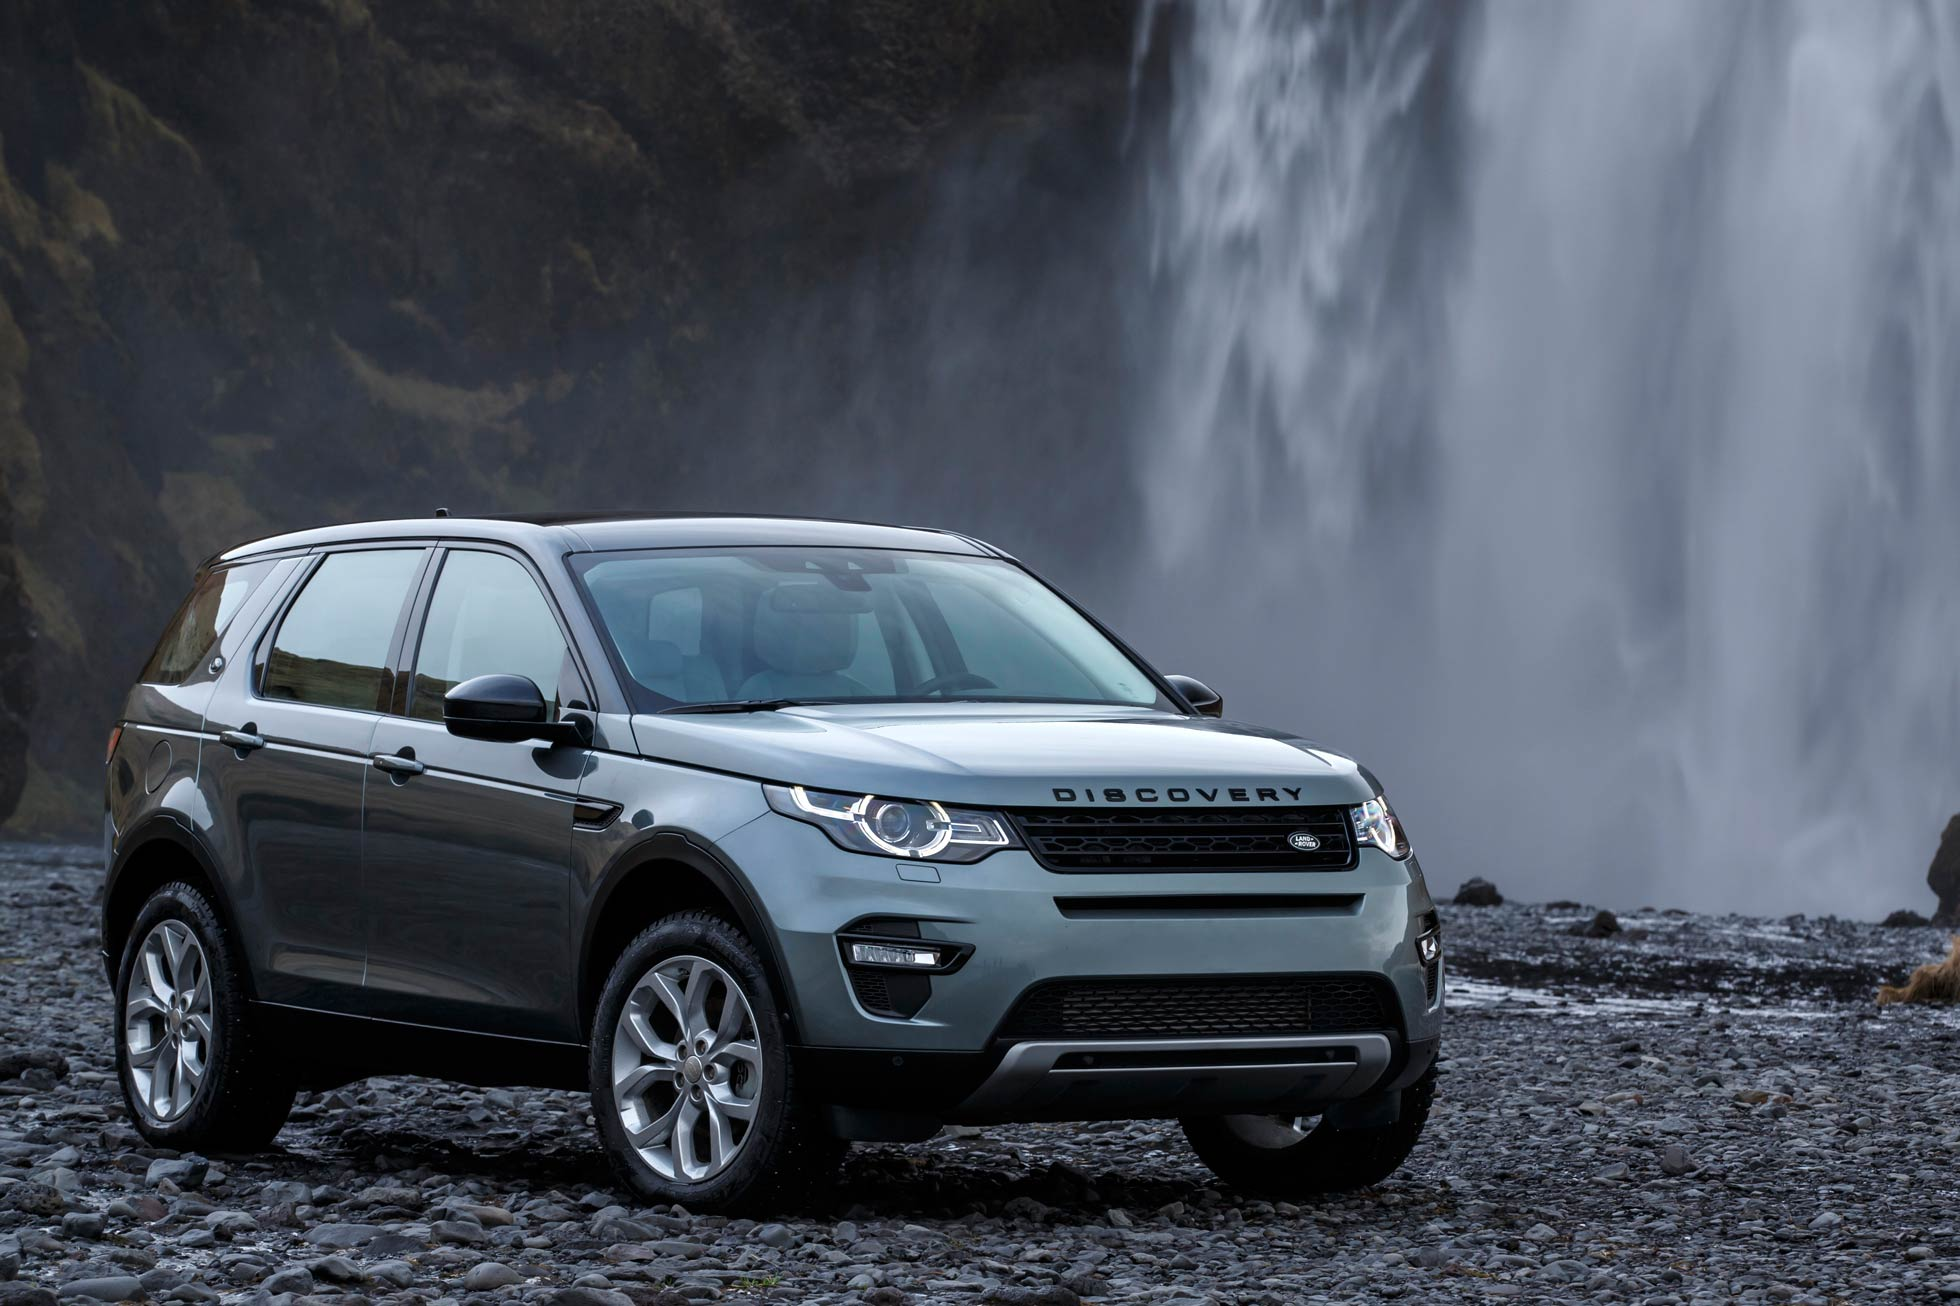 land rover discovery sport 2015 first drive review motoring research. Black Bedroom Furniture Sets. Home Design Ideas